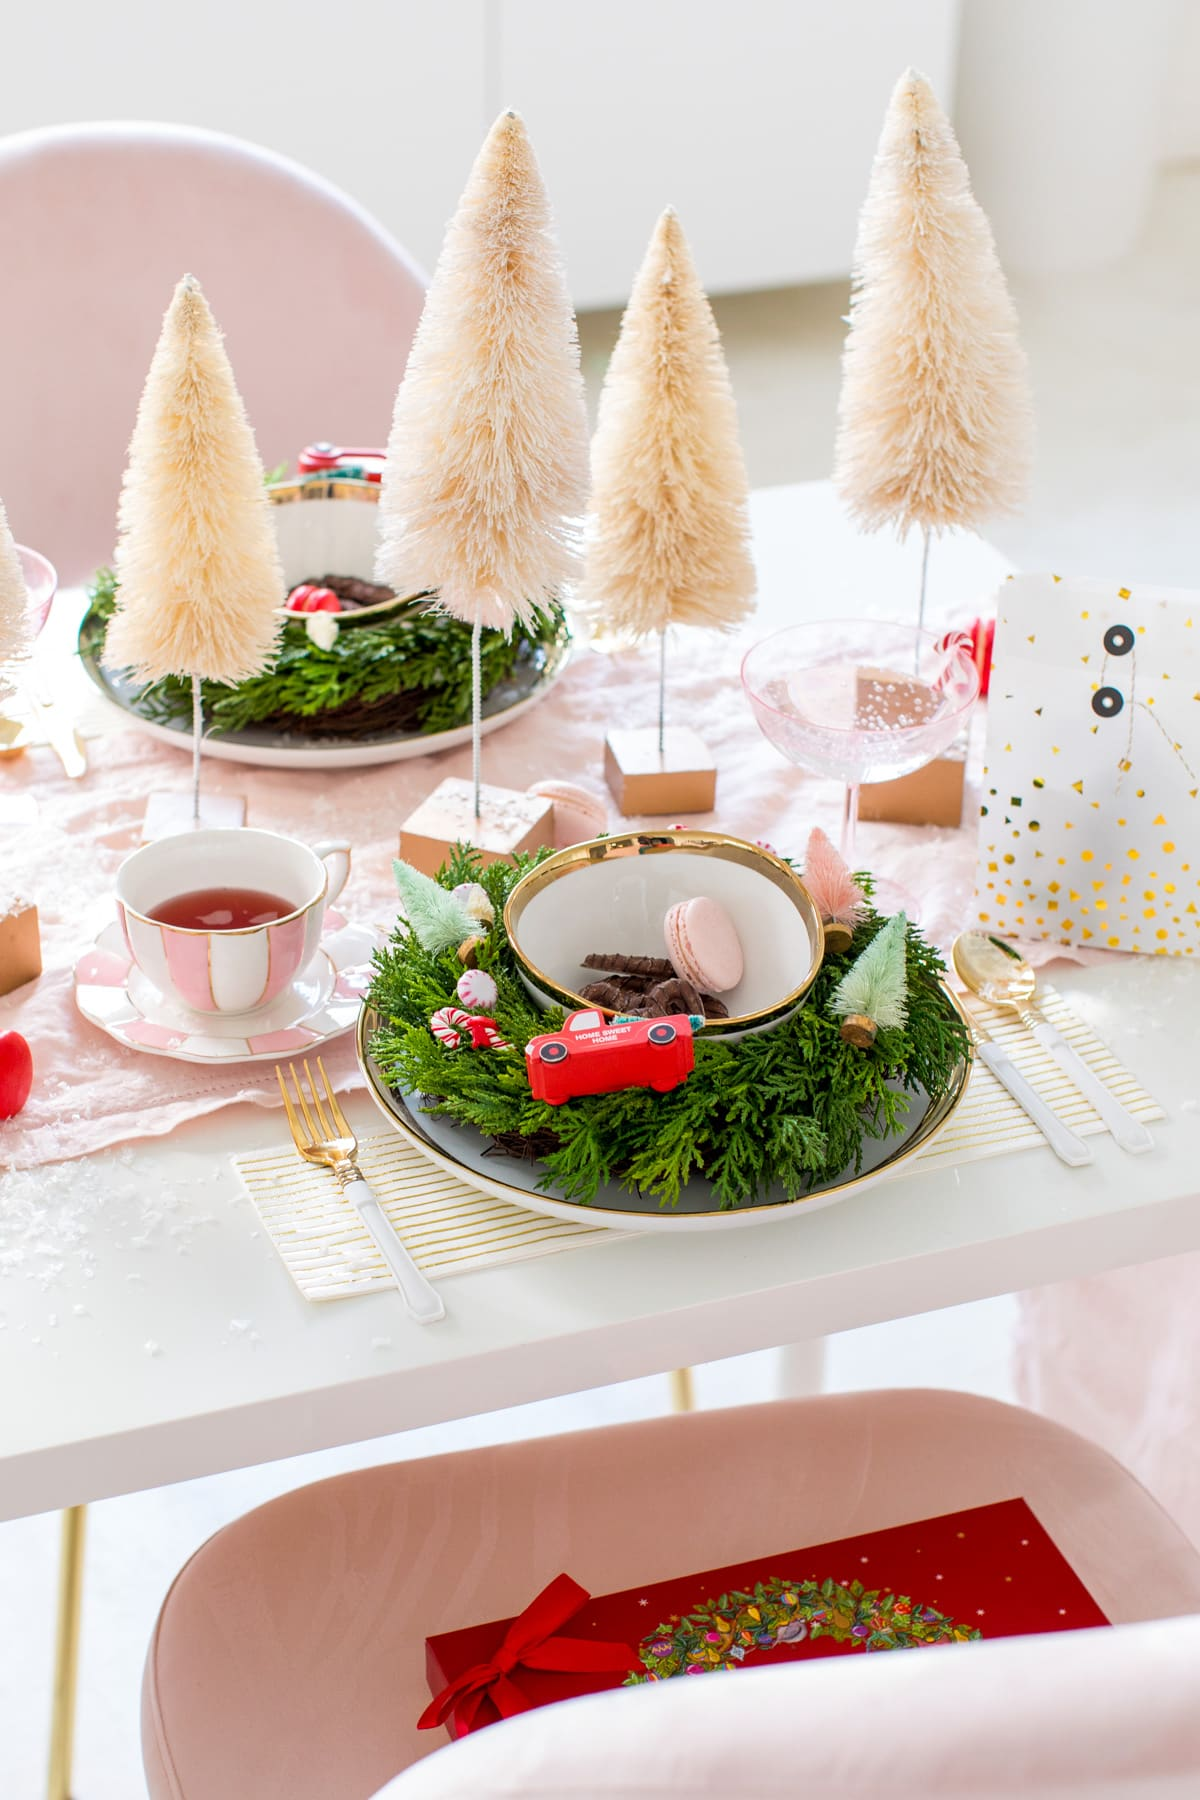 Christmas Table Settings Hostess Gift Guide by Houston lifestyle blogger Ashley Rose of Sugar and Cloth -- #giftguide #chirstmas #entertaining #holidayentertaining #presents